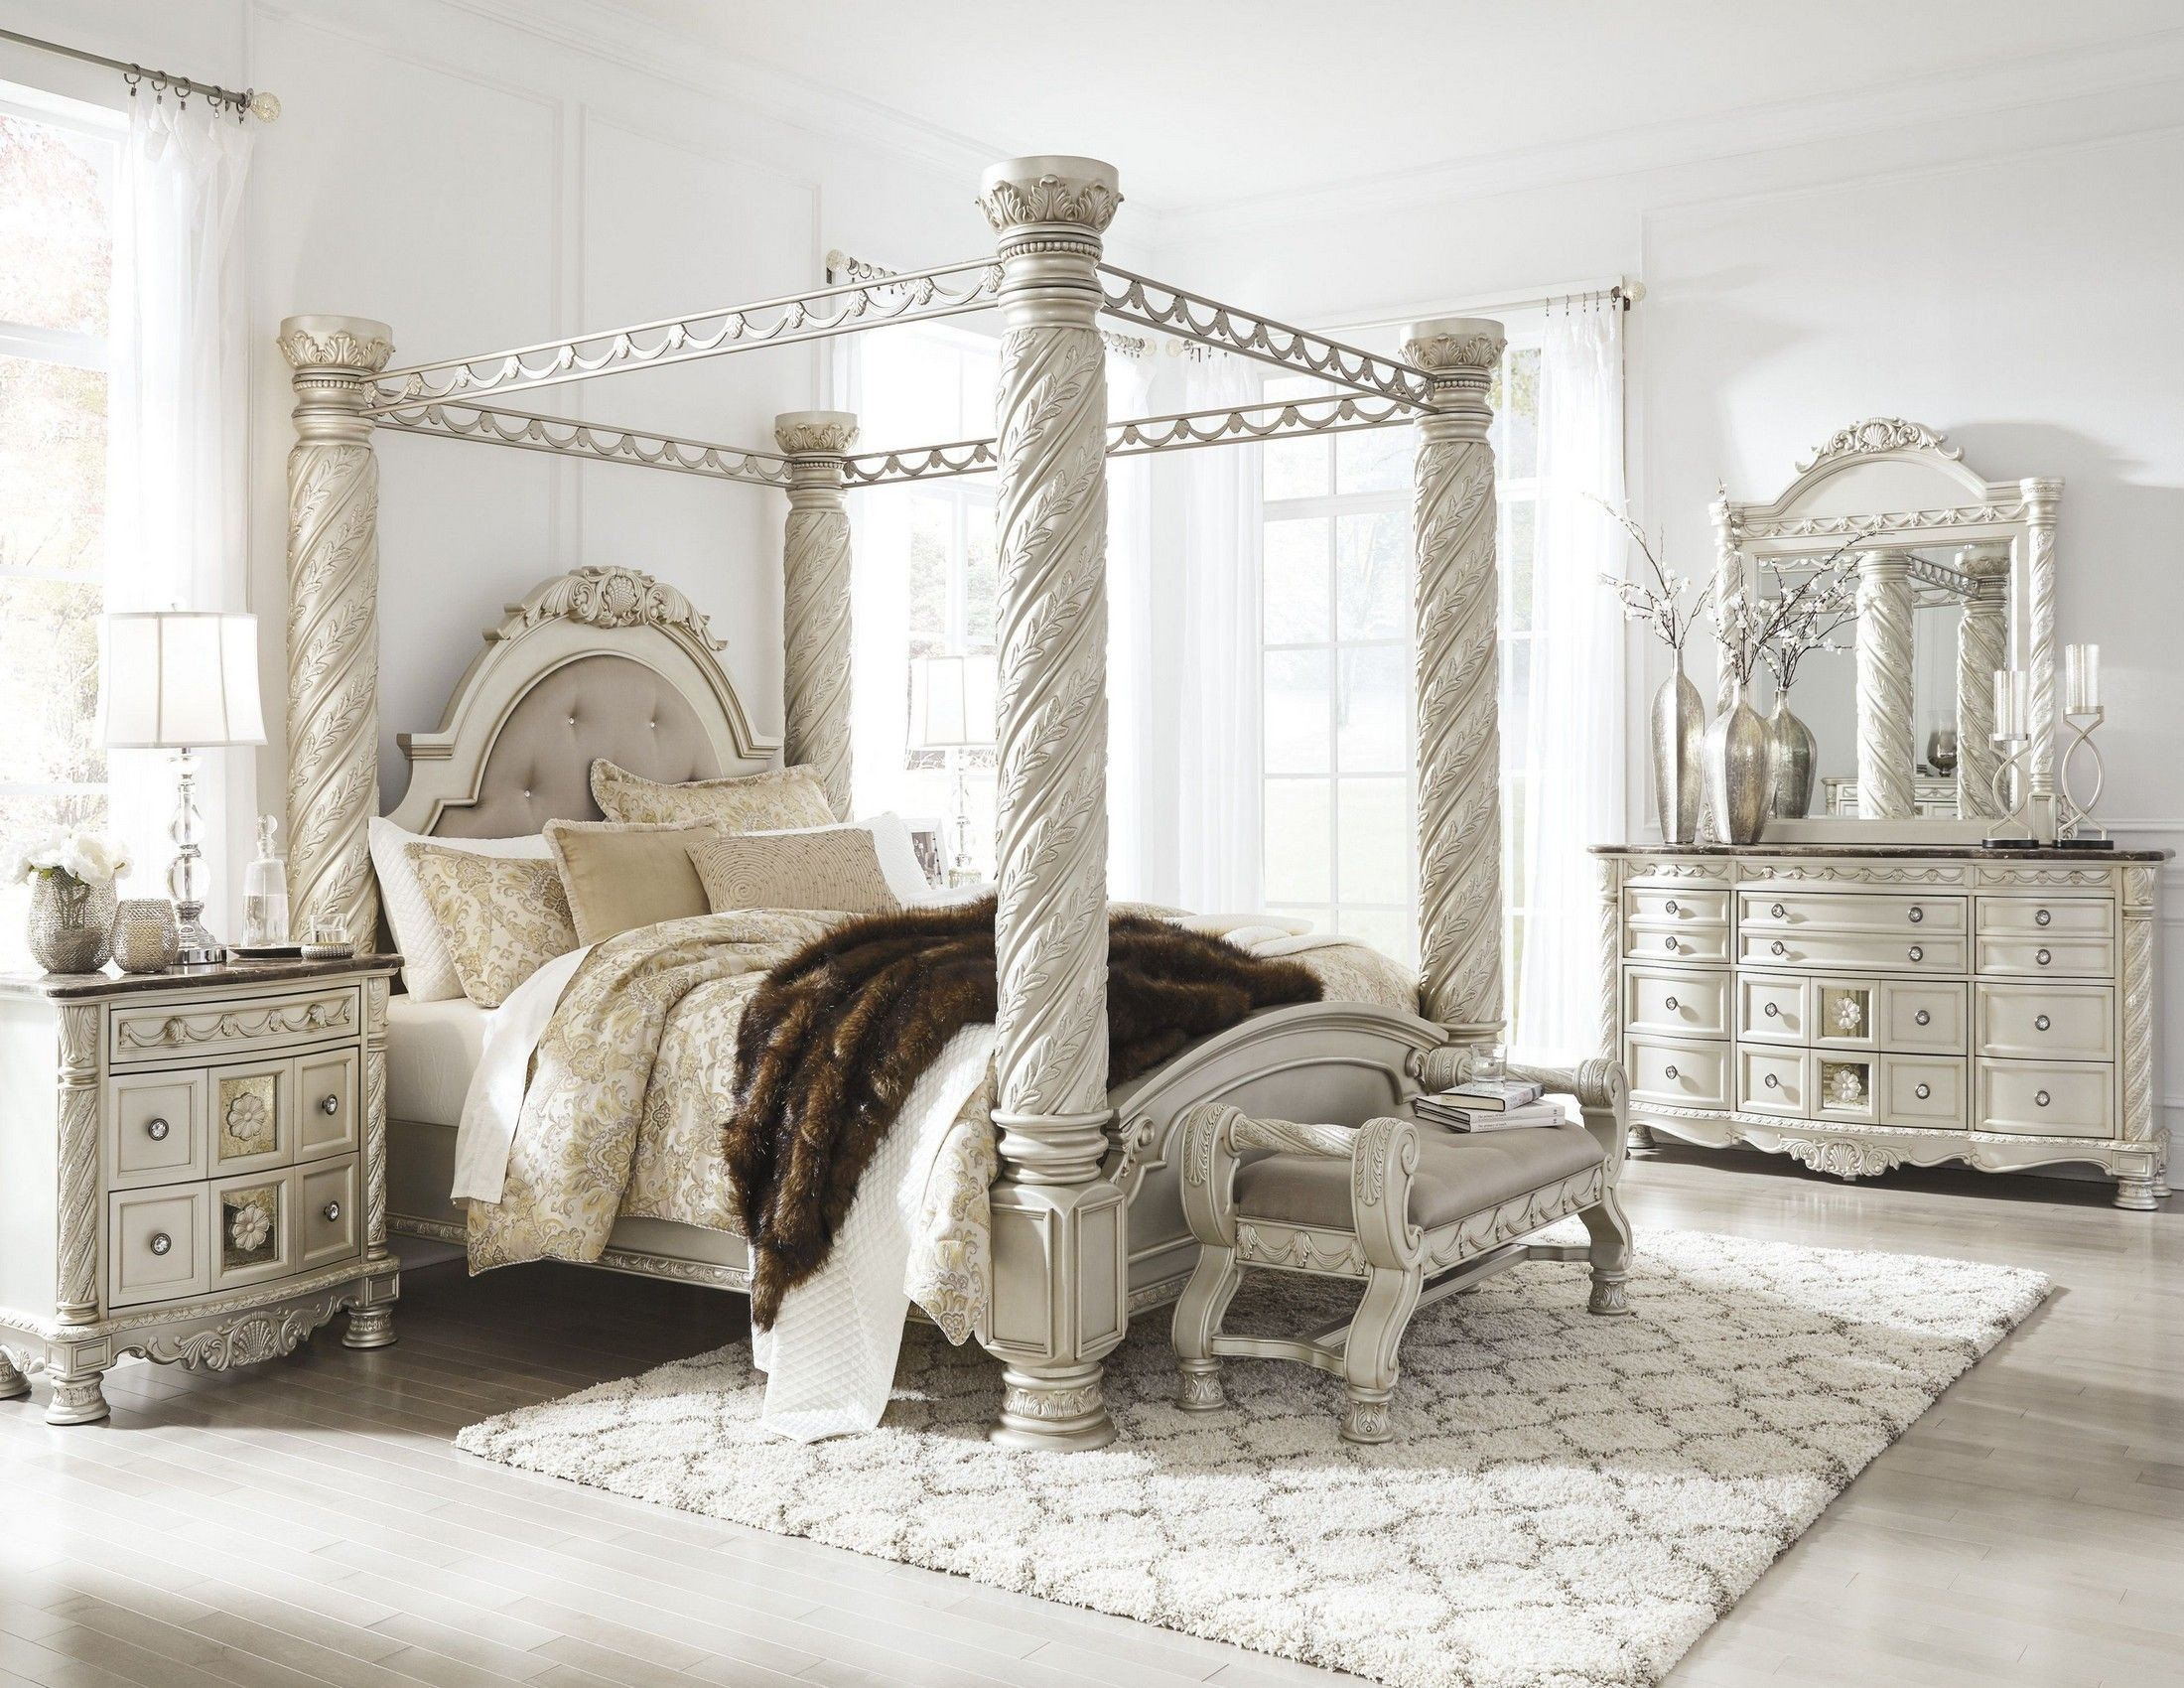 King Size Poster Bedroom Set Luxury Cassimore north Shore Pearl Silver Upholstered Poster Canopy